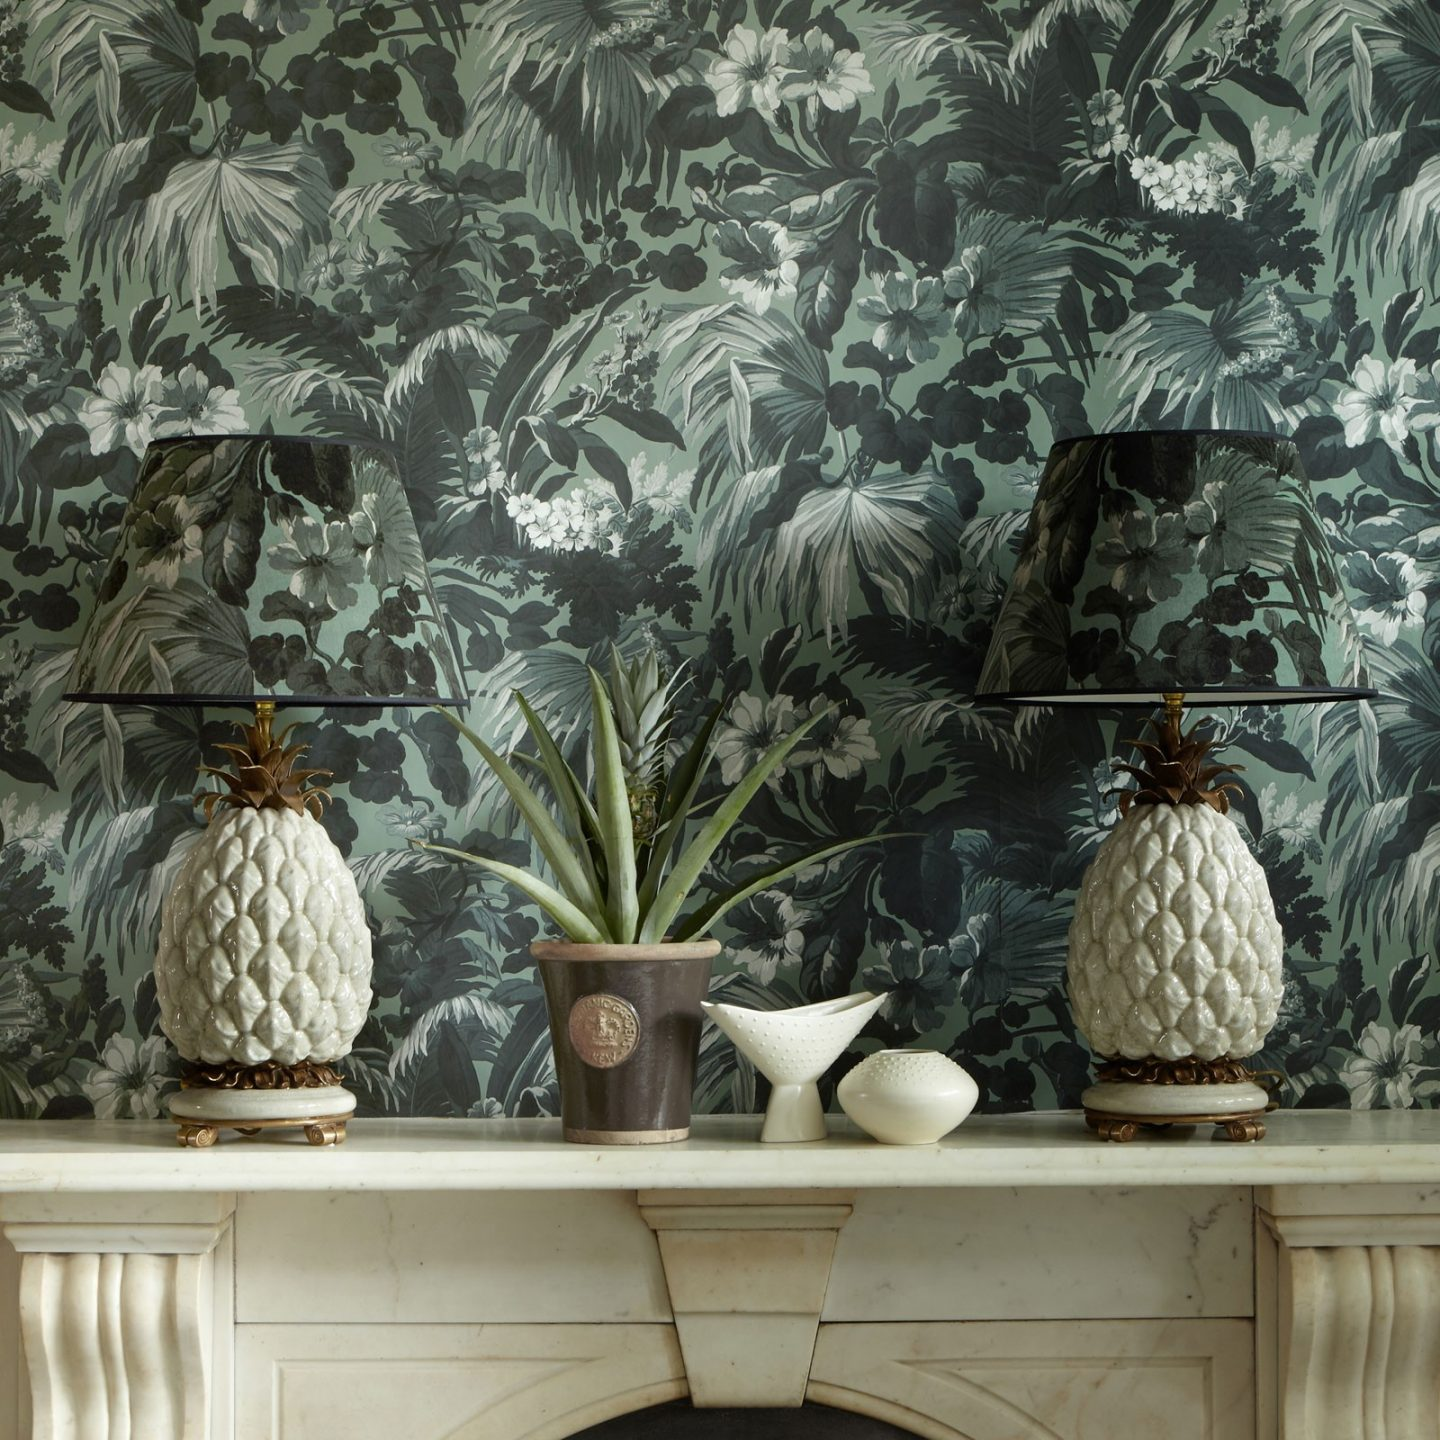 Green Wallpaper, the greenery edit, leafy wallpaper, jungle wallpaper, foliage wallpaper, Limerence wallpaper, House of Hackney